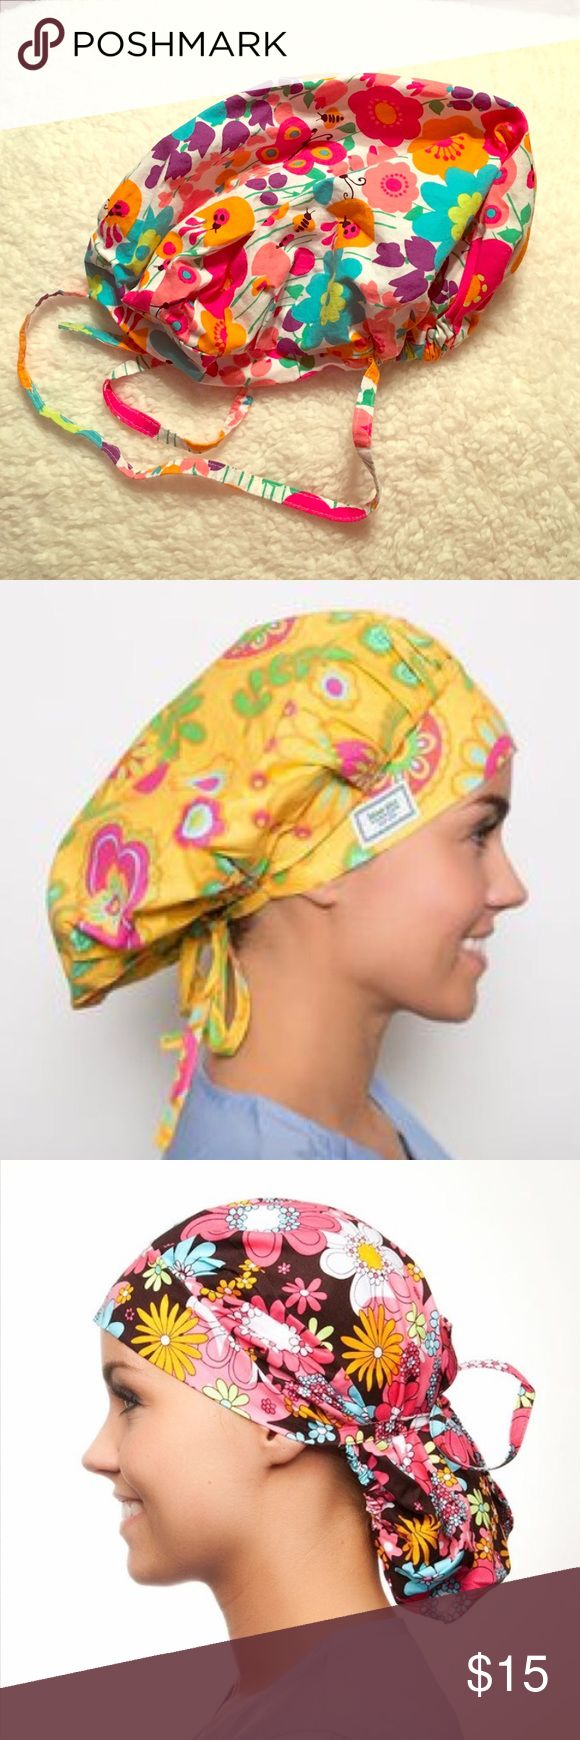 Blue Sky Scrubs Poppy Surgical Scrub Cap 😷 Blue Sky Scrubs Poppy Surgical Scrub Cap 😷, Springtime Print! Can be worn as full bouffant or pulled back with attached ties. Two hats in one!  Excellent condition. *Model pictures are for cap style reference only.* Blue Sky Scrubs Other